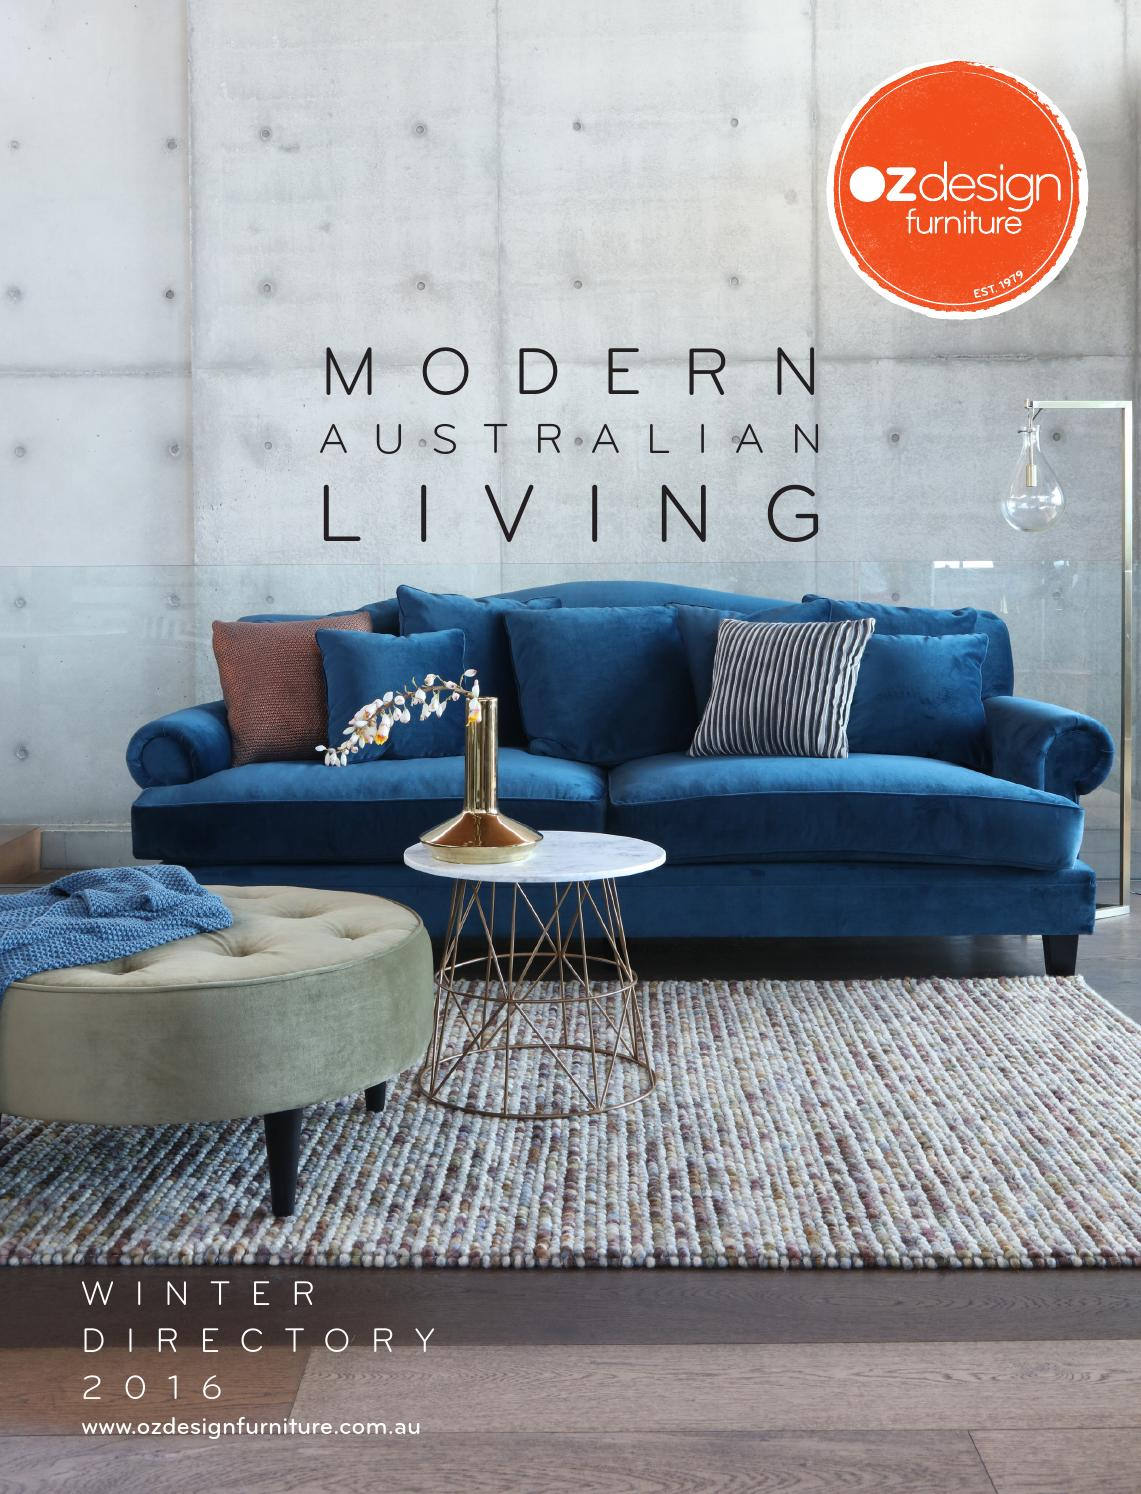 jarvis chair oz design small dining room chairs with arms modern australian living furniture winter 16